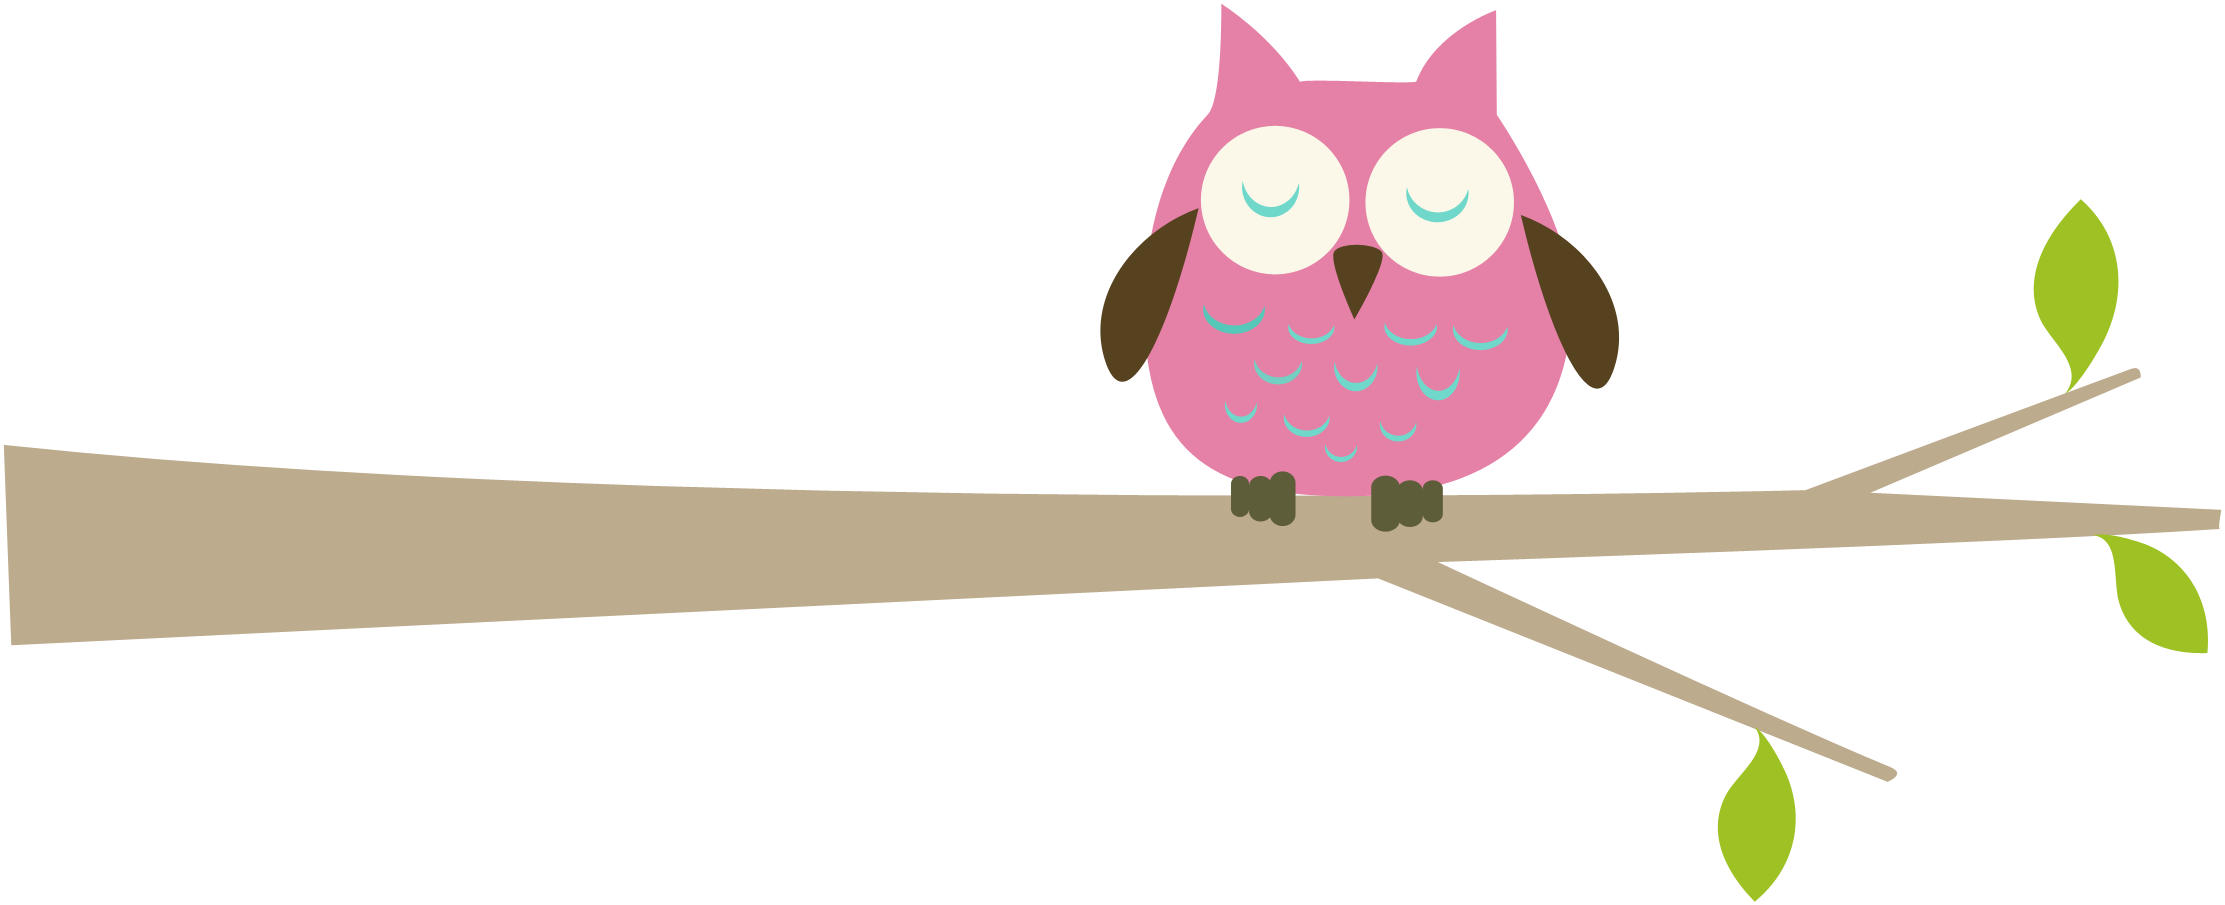 owls in tree branch clipart - Clipground